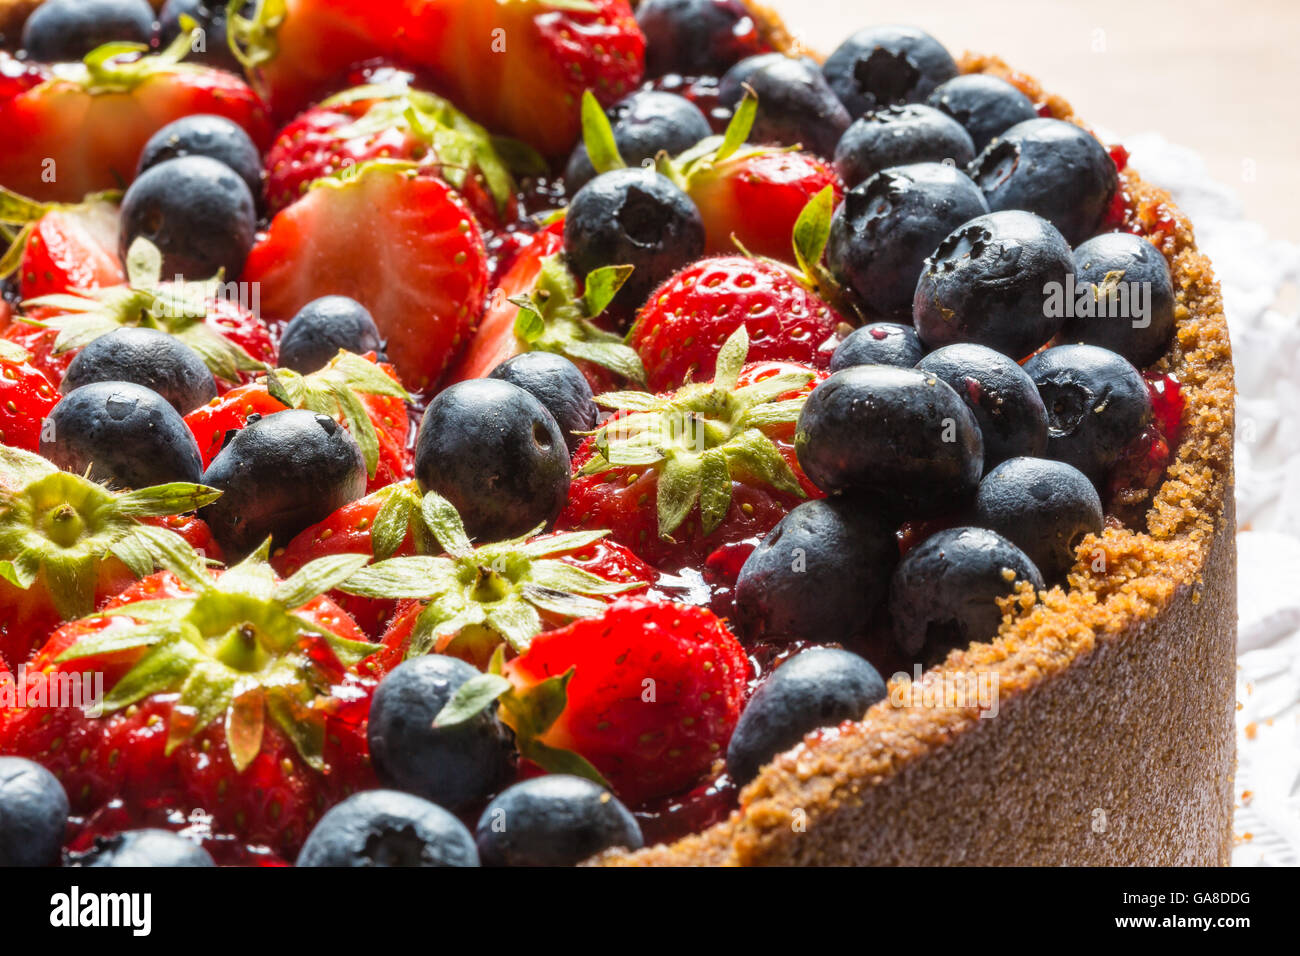 cheese cake with strawberries and blueberries - Stock Image